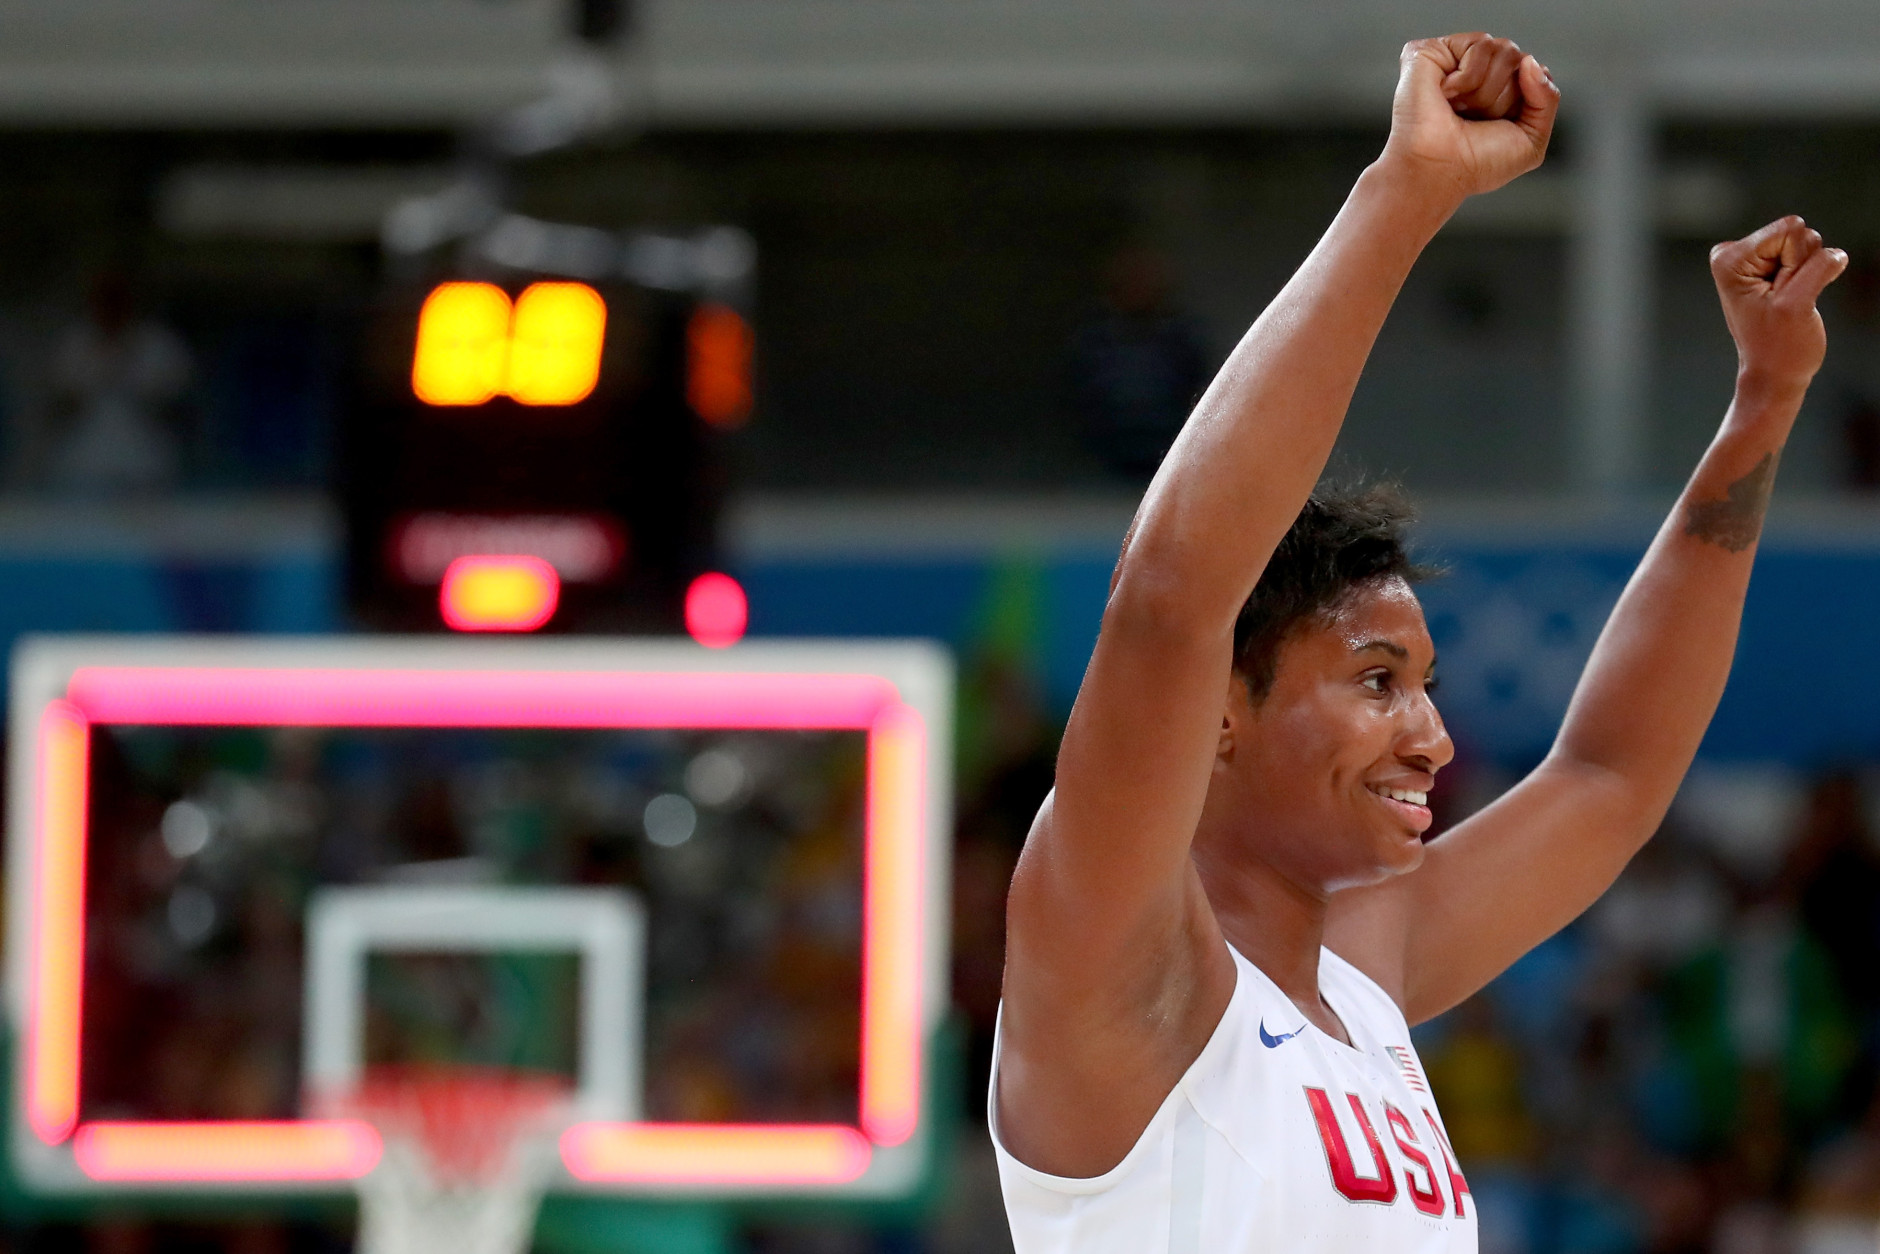 RIO DE JANEIRO, BRAZIL - AUGUST 20:  Angel Mccoughtry #8 of United States celebrates winning the Women's Gold Medal Game between United States and Spain on Day 15 of the Rio 2016 Olympic Games at Carioca Arena 1 on August 20, 2016 in Rio de Janeiro, Brazil.  (Photo by Tom Pennington/Getty Images)